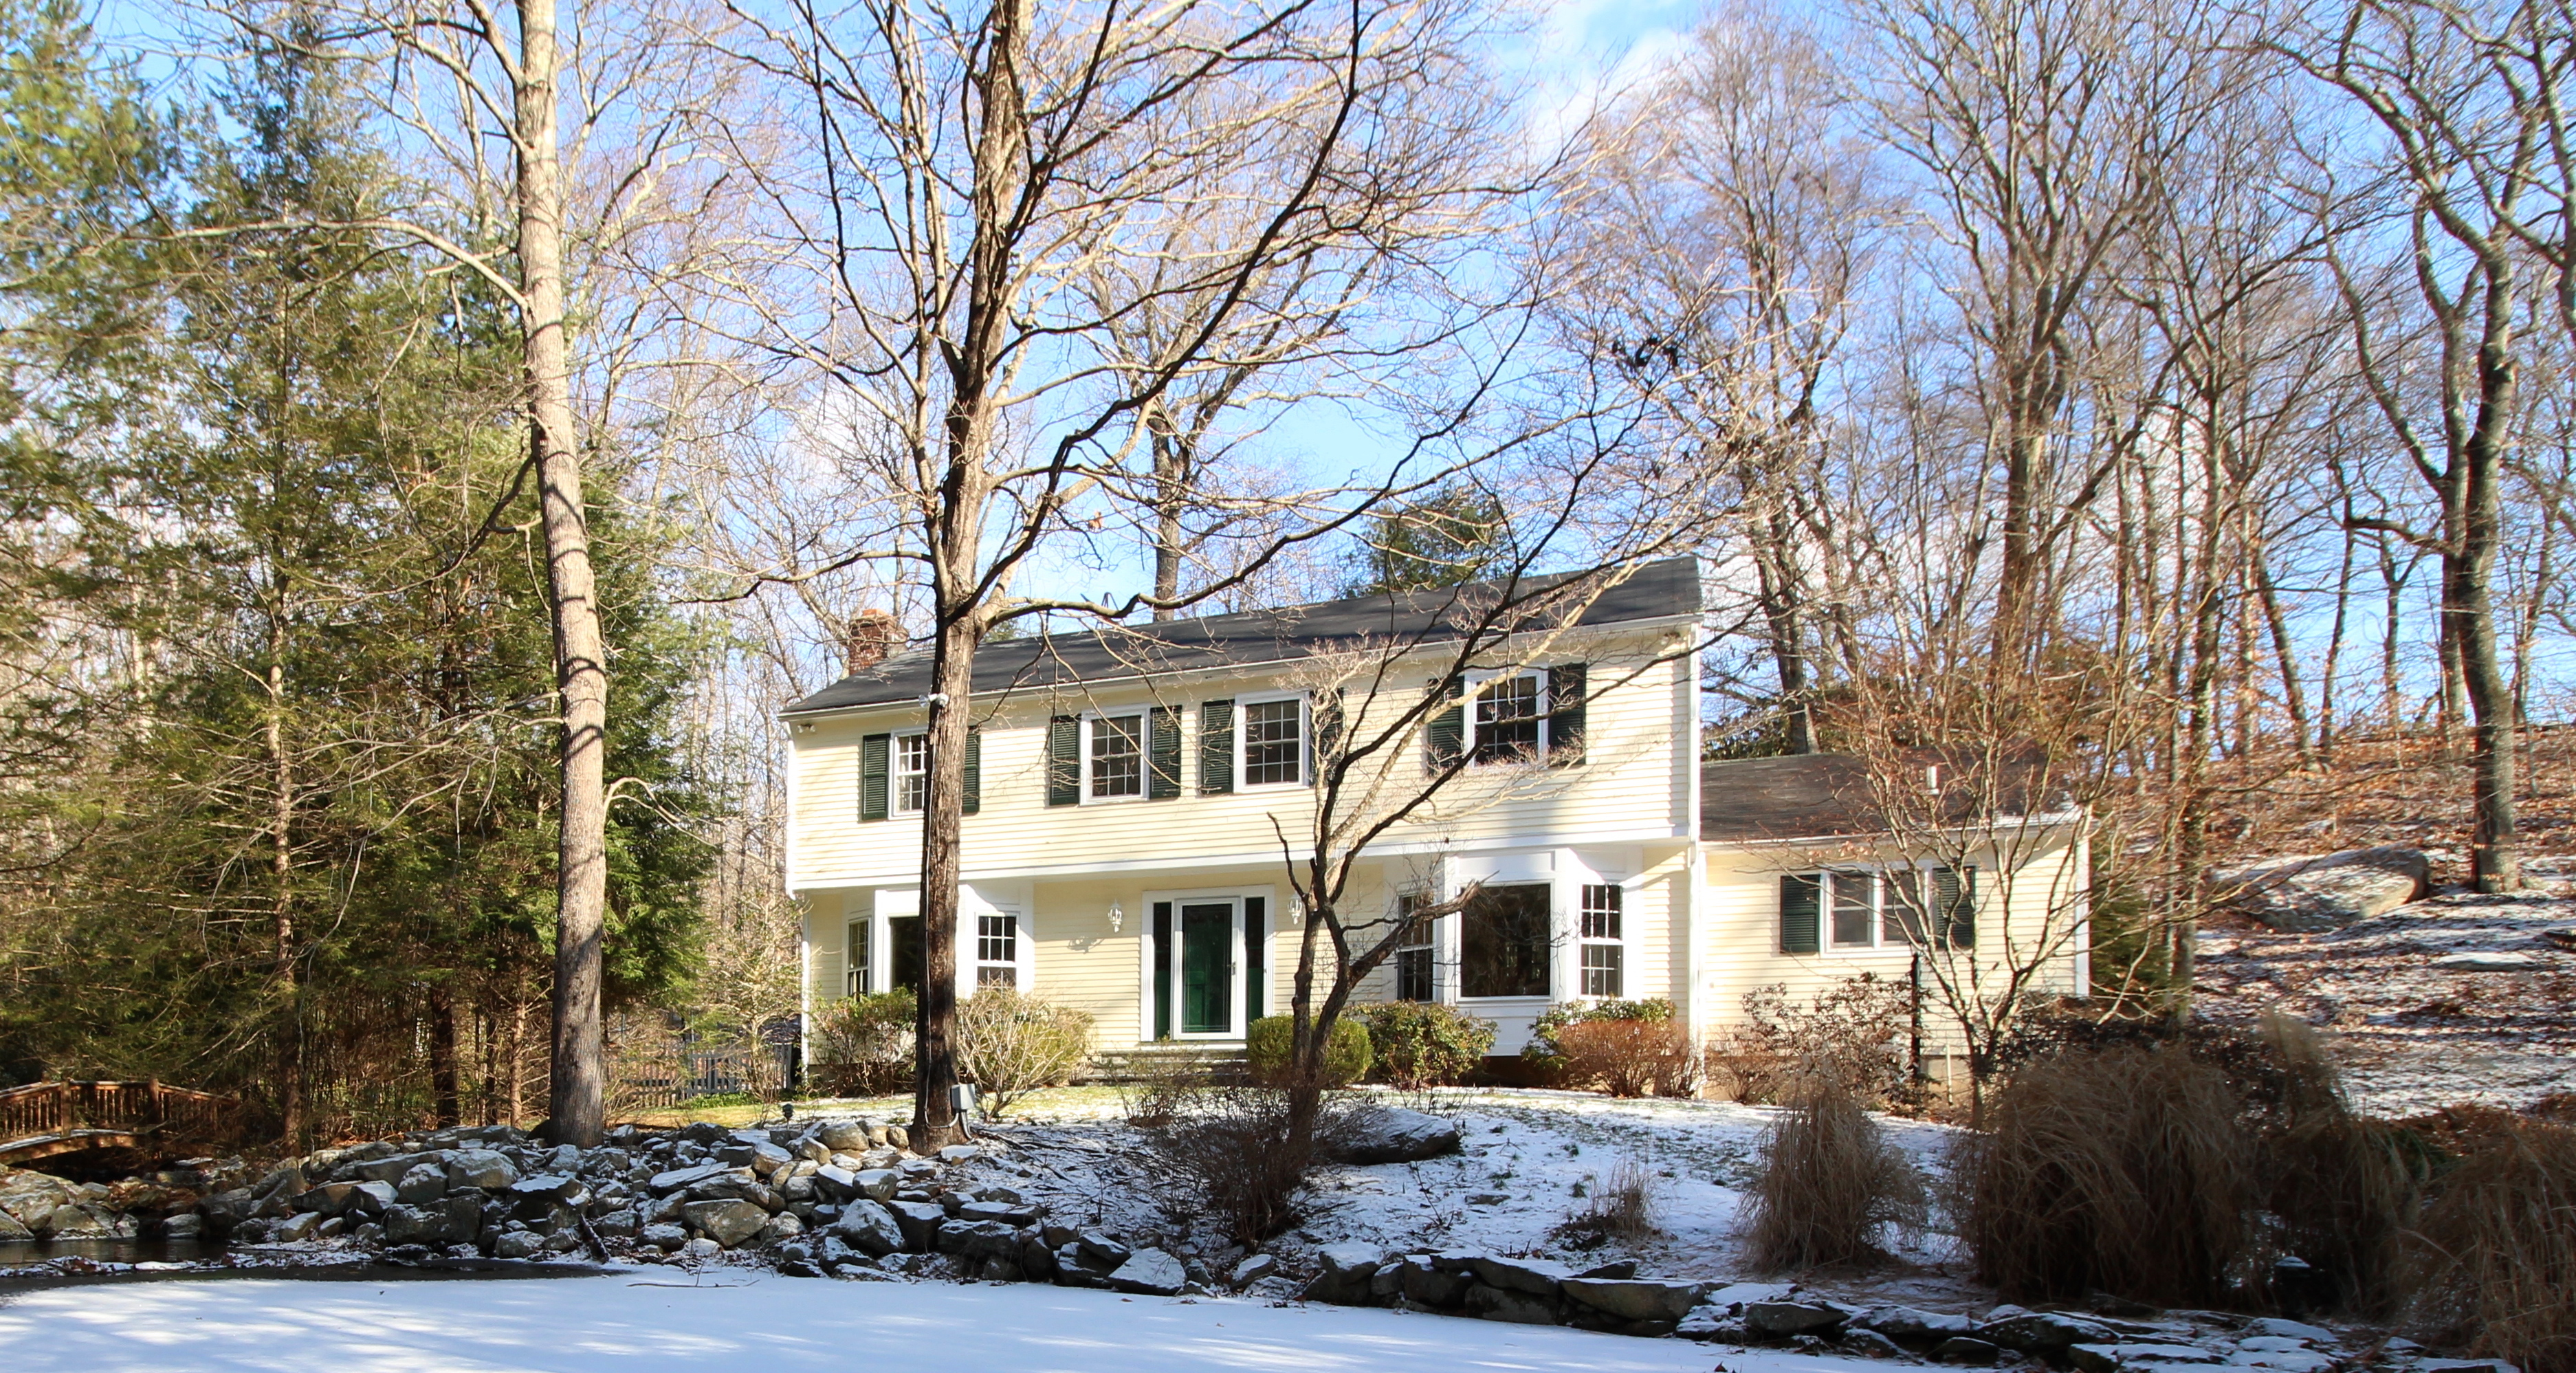 Property For Sale at Signature South Wilton Colonial